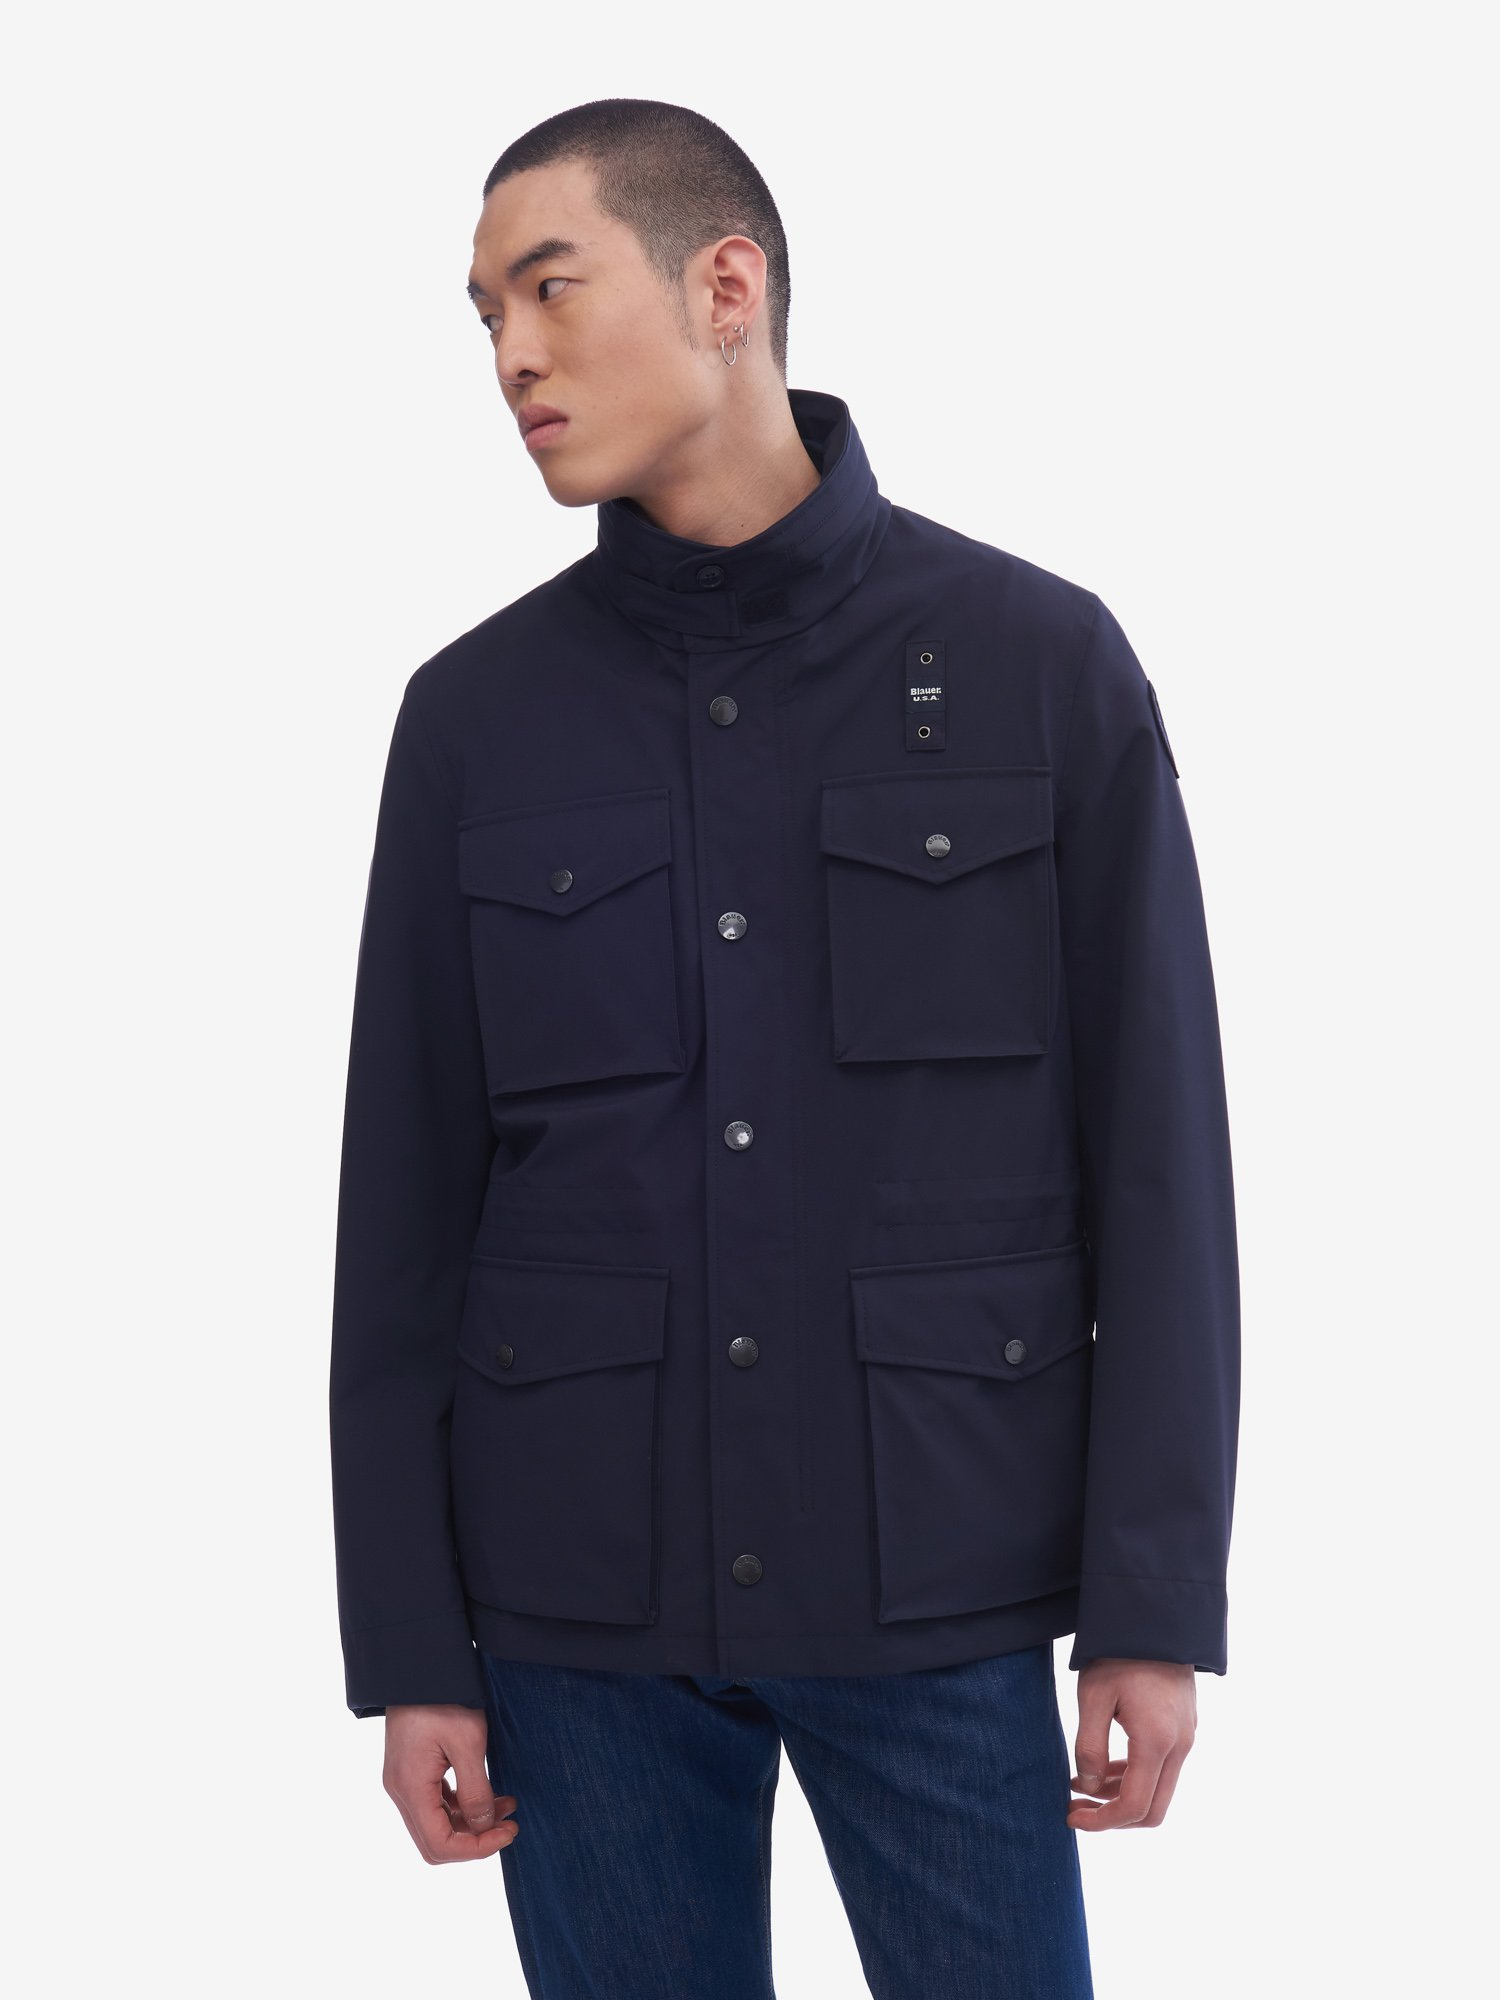 NEOPRENE UNLINED FIELD JACKET - Blauer